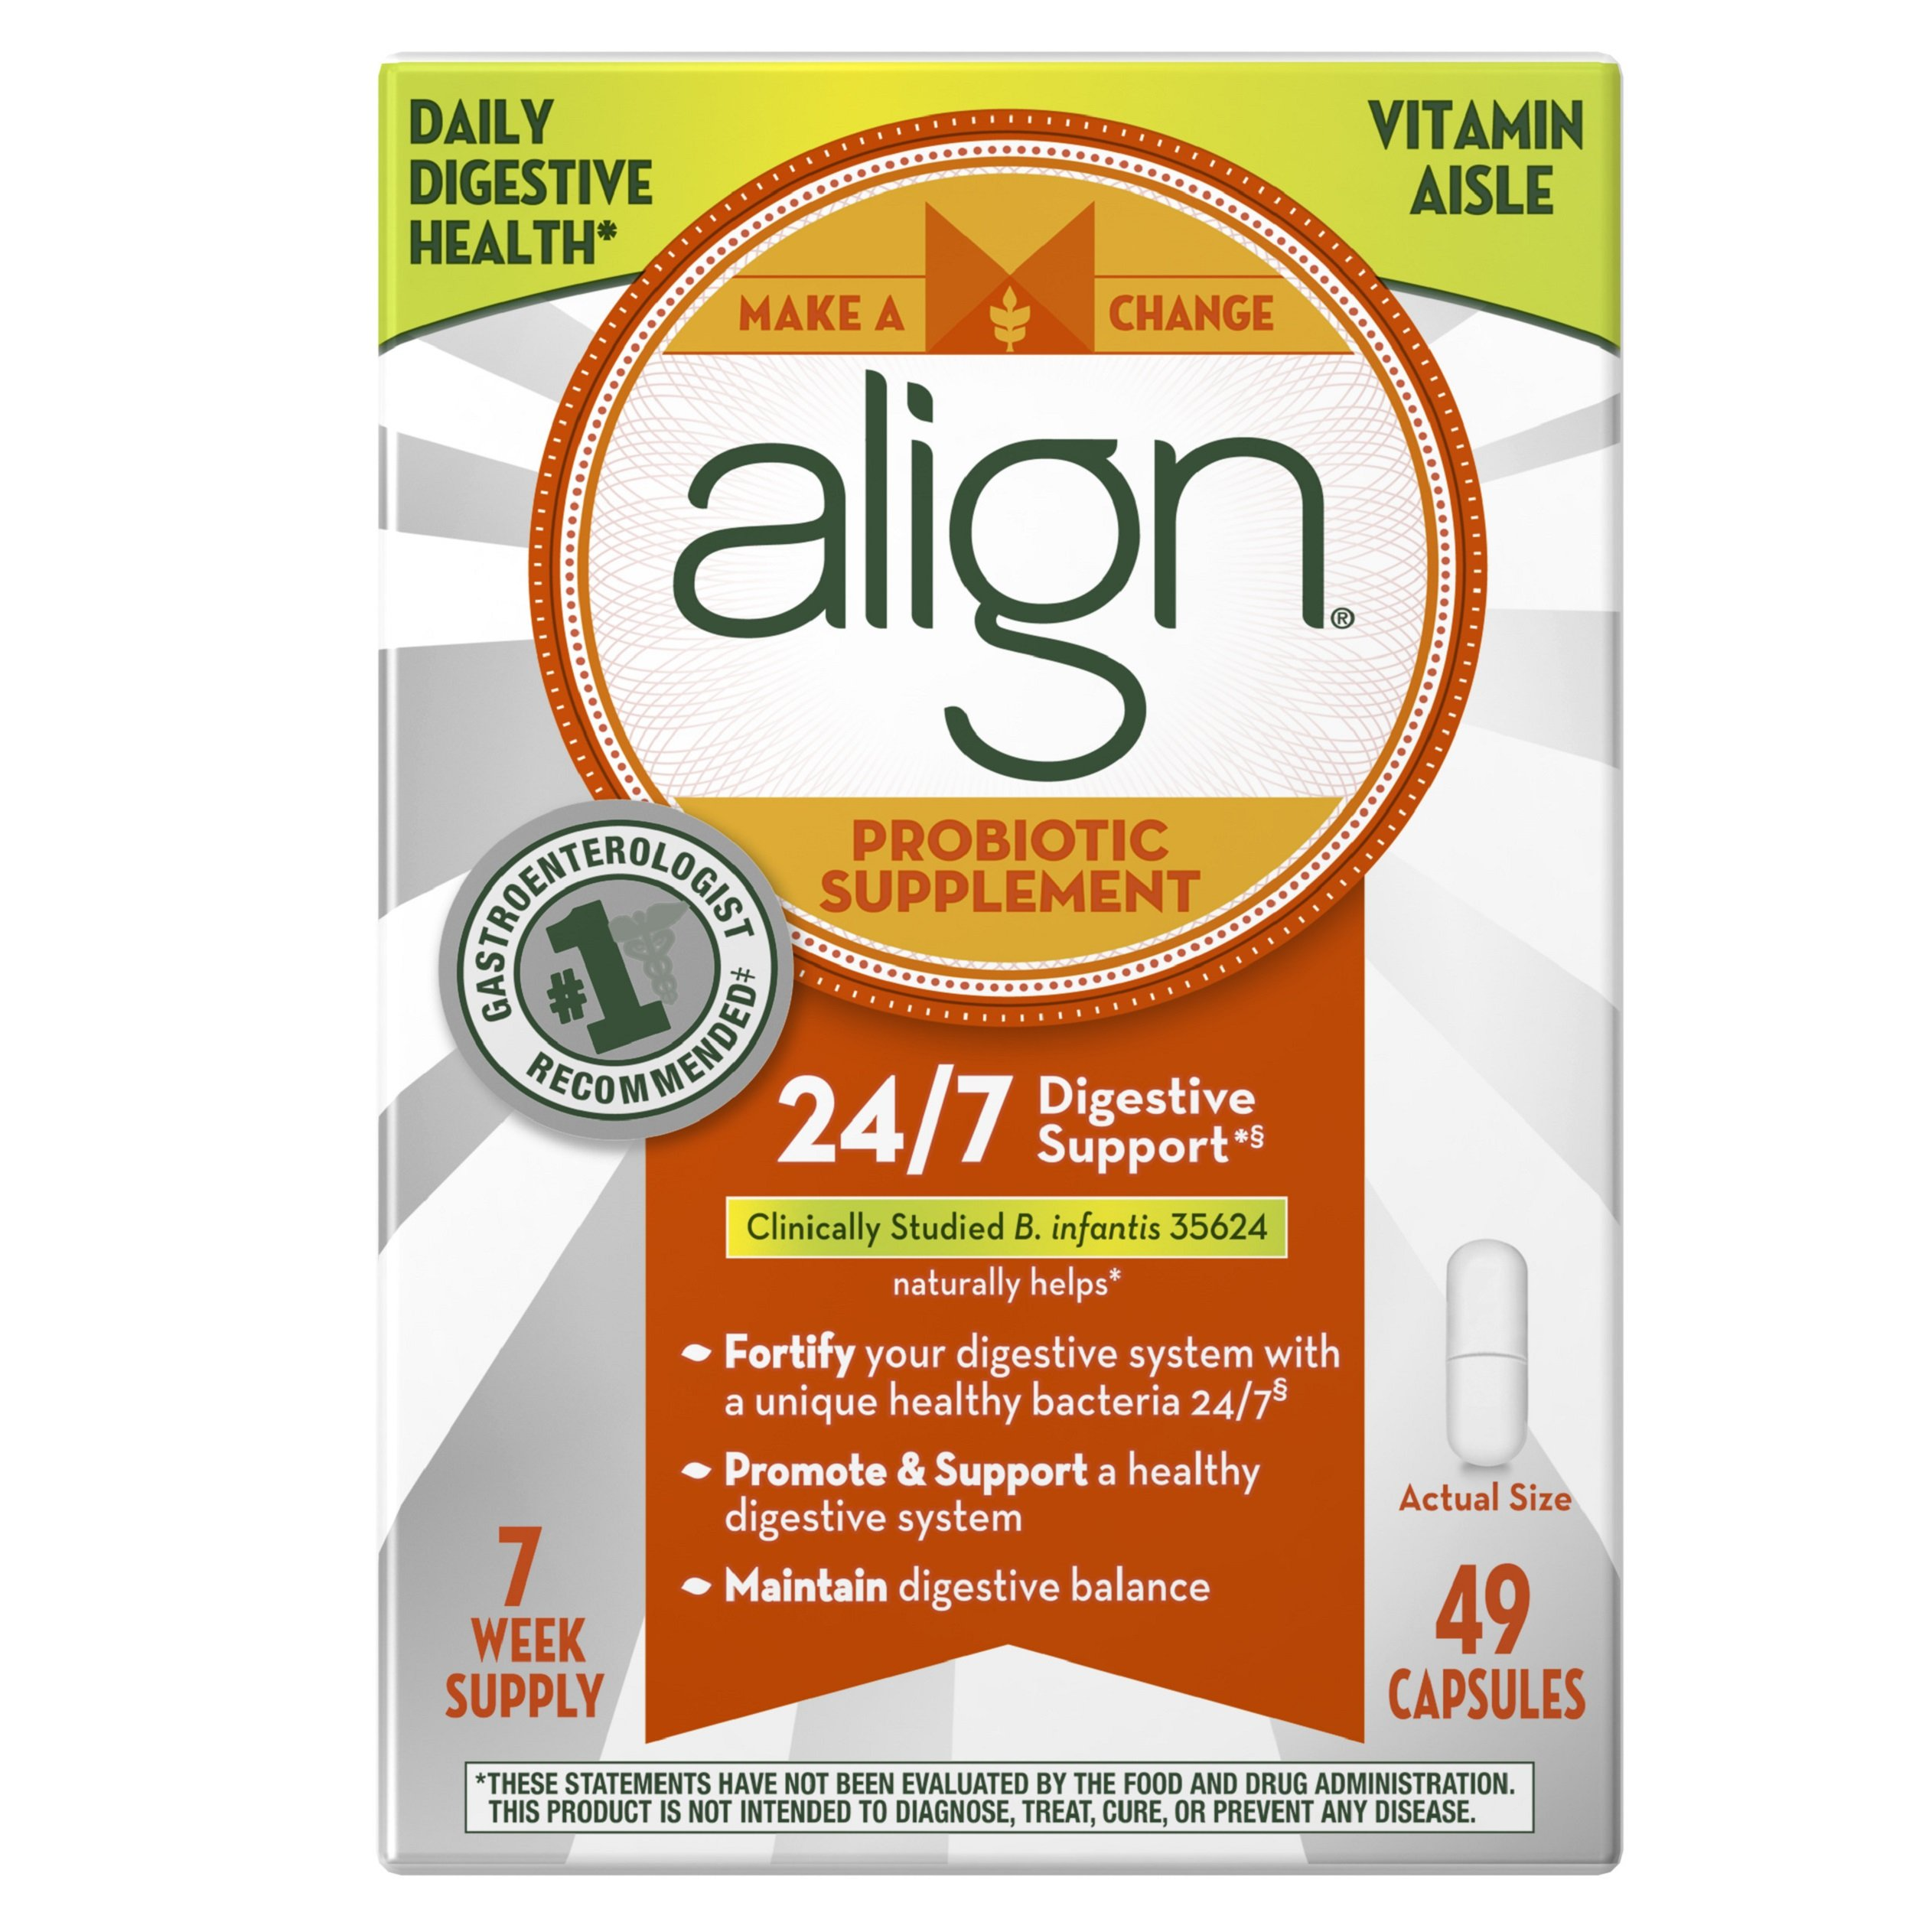 Align Daily Probiotic Supplement, Probiotics Supplement, 49 Capsules